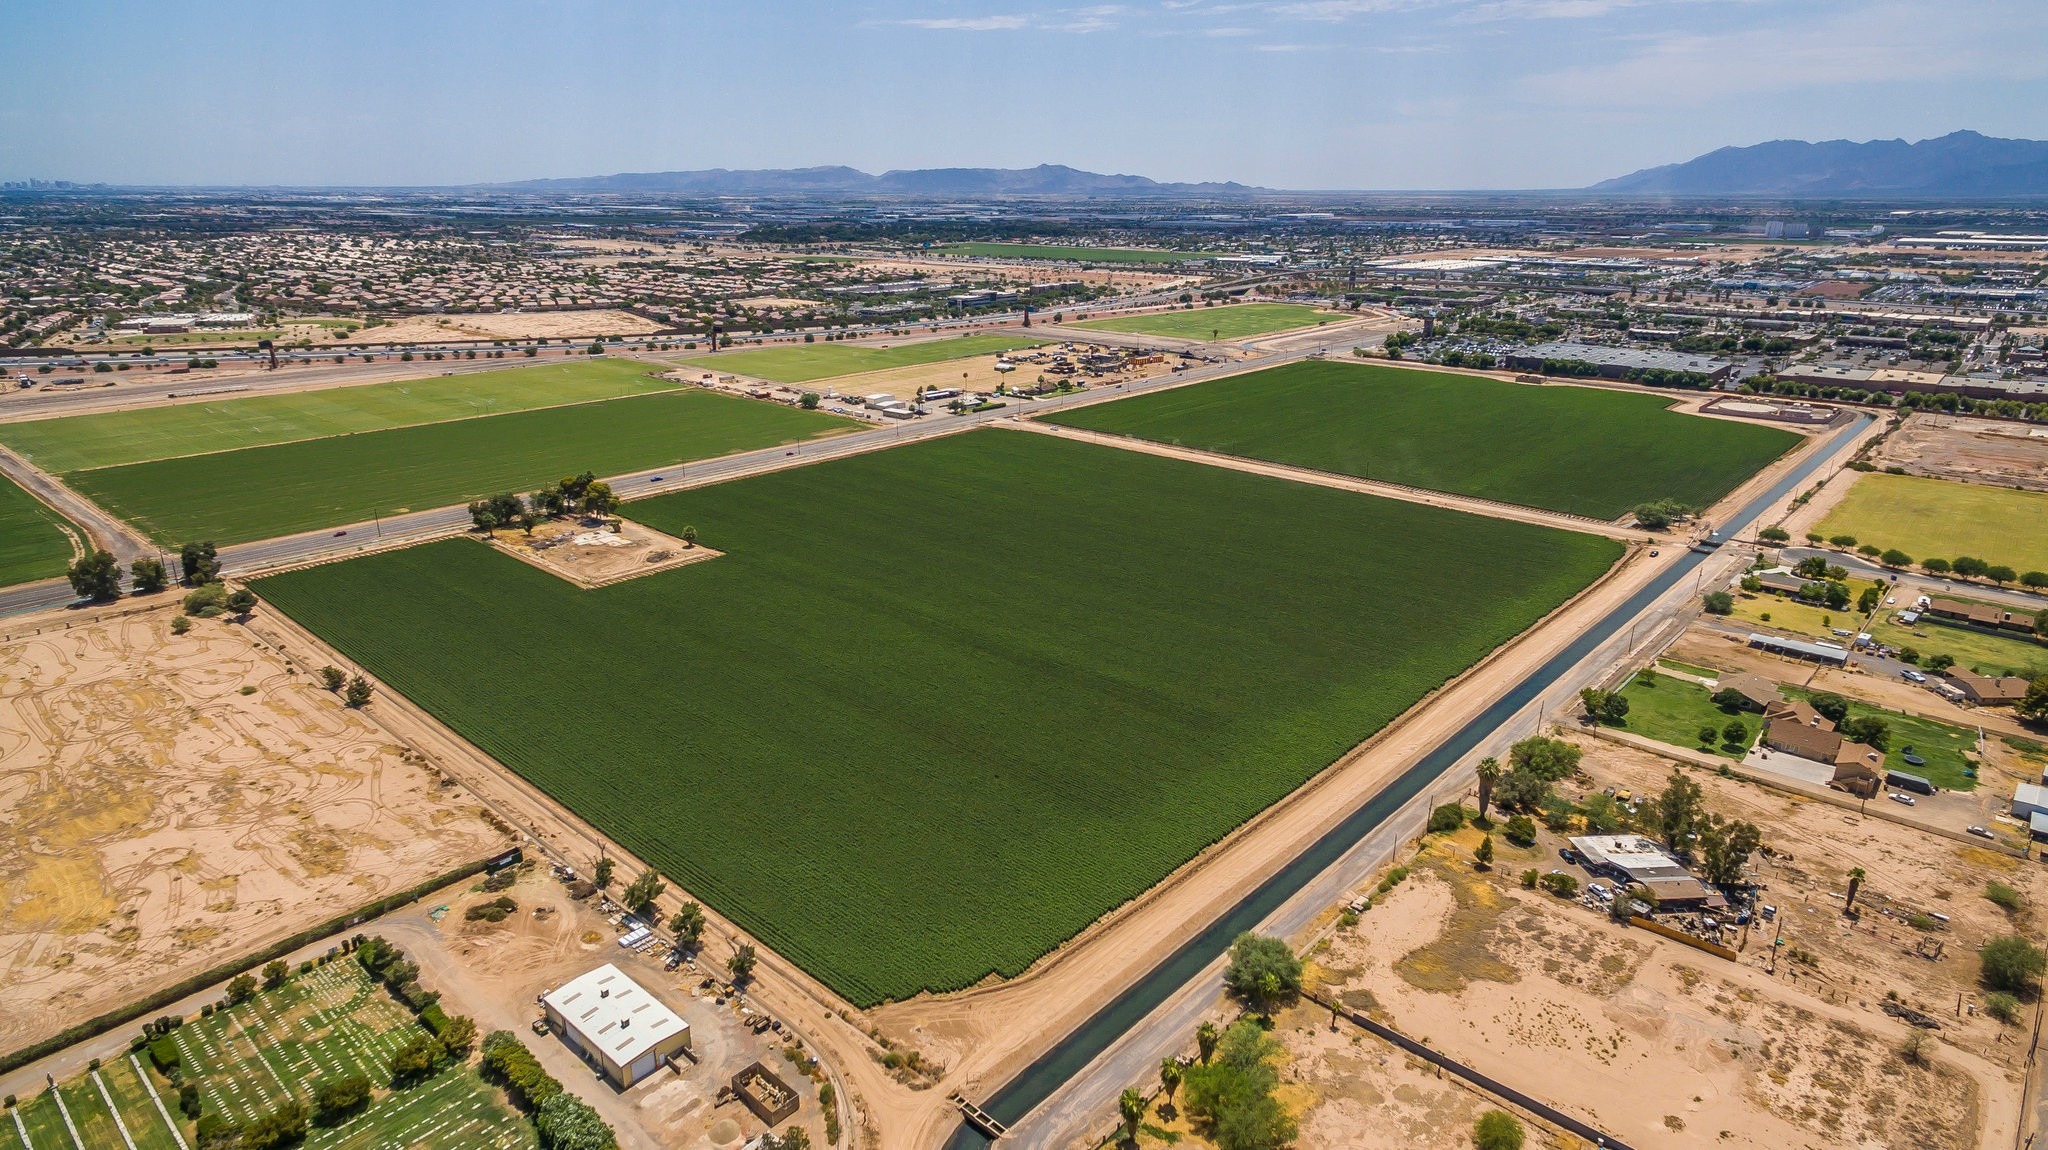 The SpringHill Suites by Marriott project site in Avondale, Ariz. Most of the projects spurred so far by the Opportunity Zone designations are real estate.  (Virtua Partners, via PR Newswire)